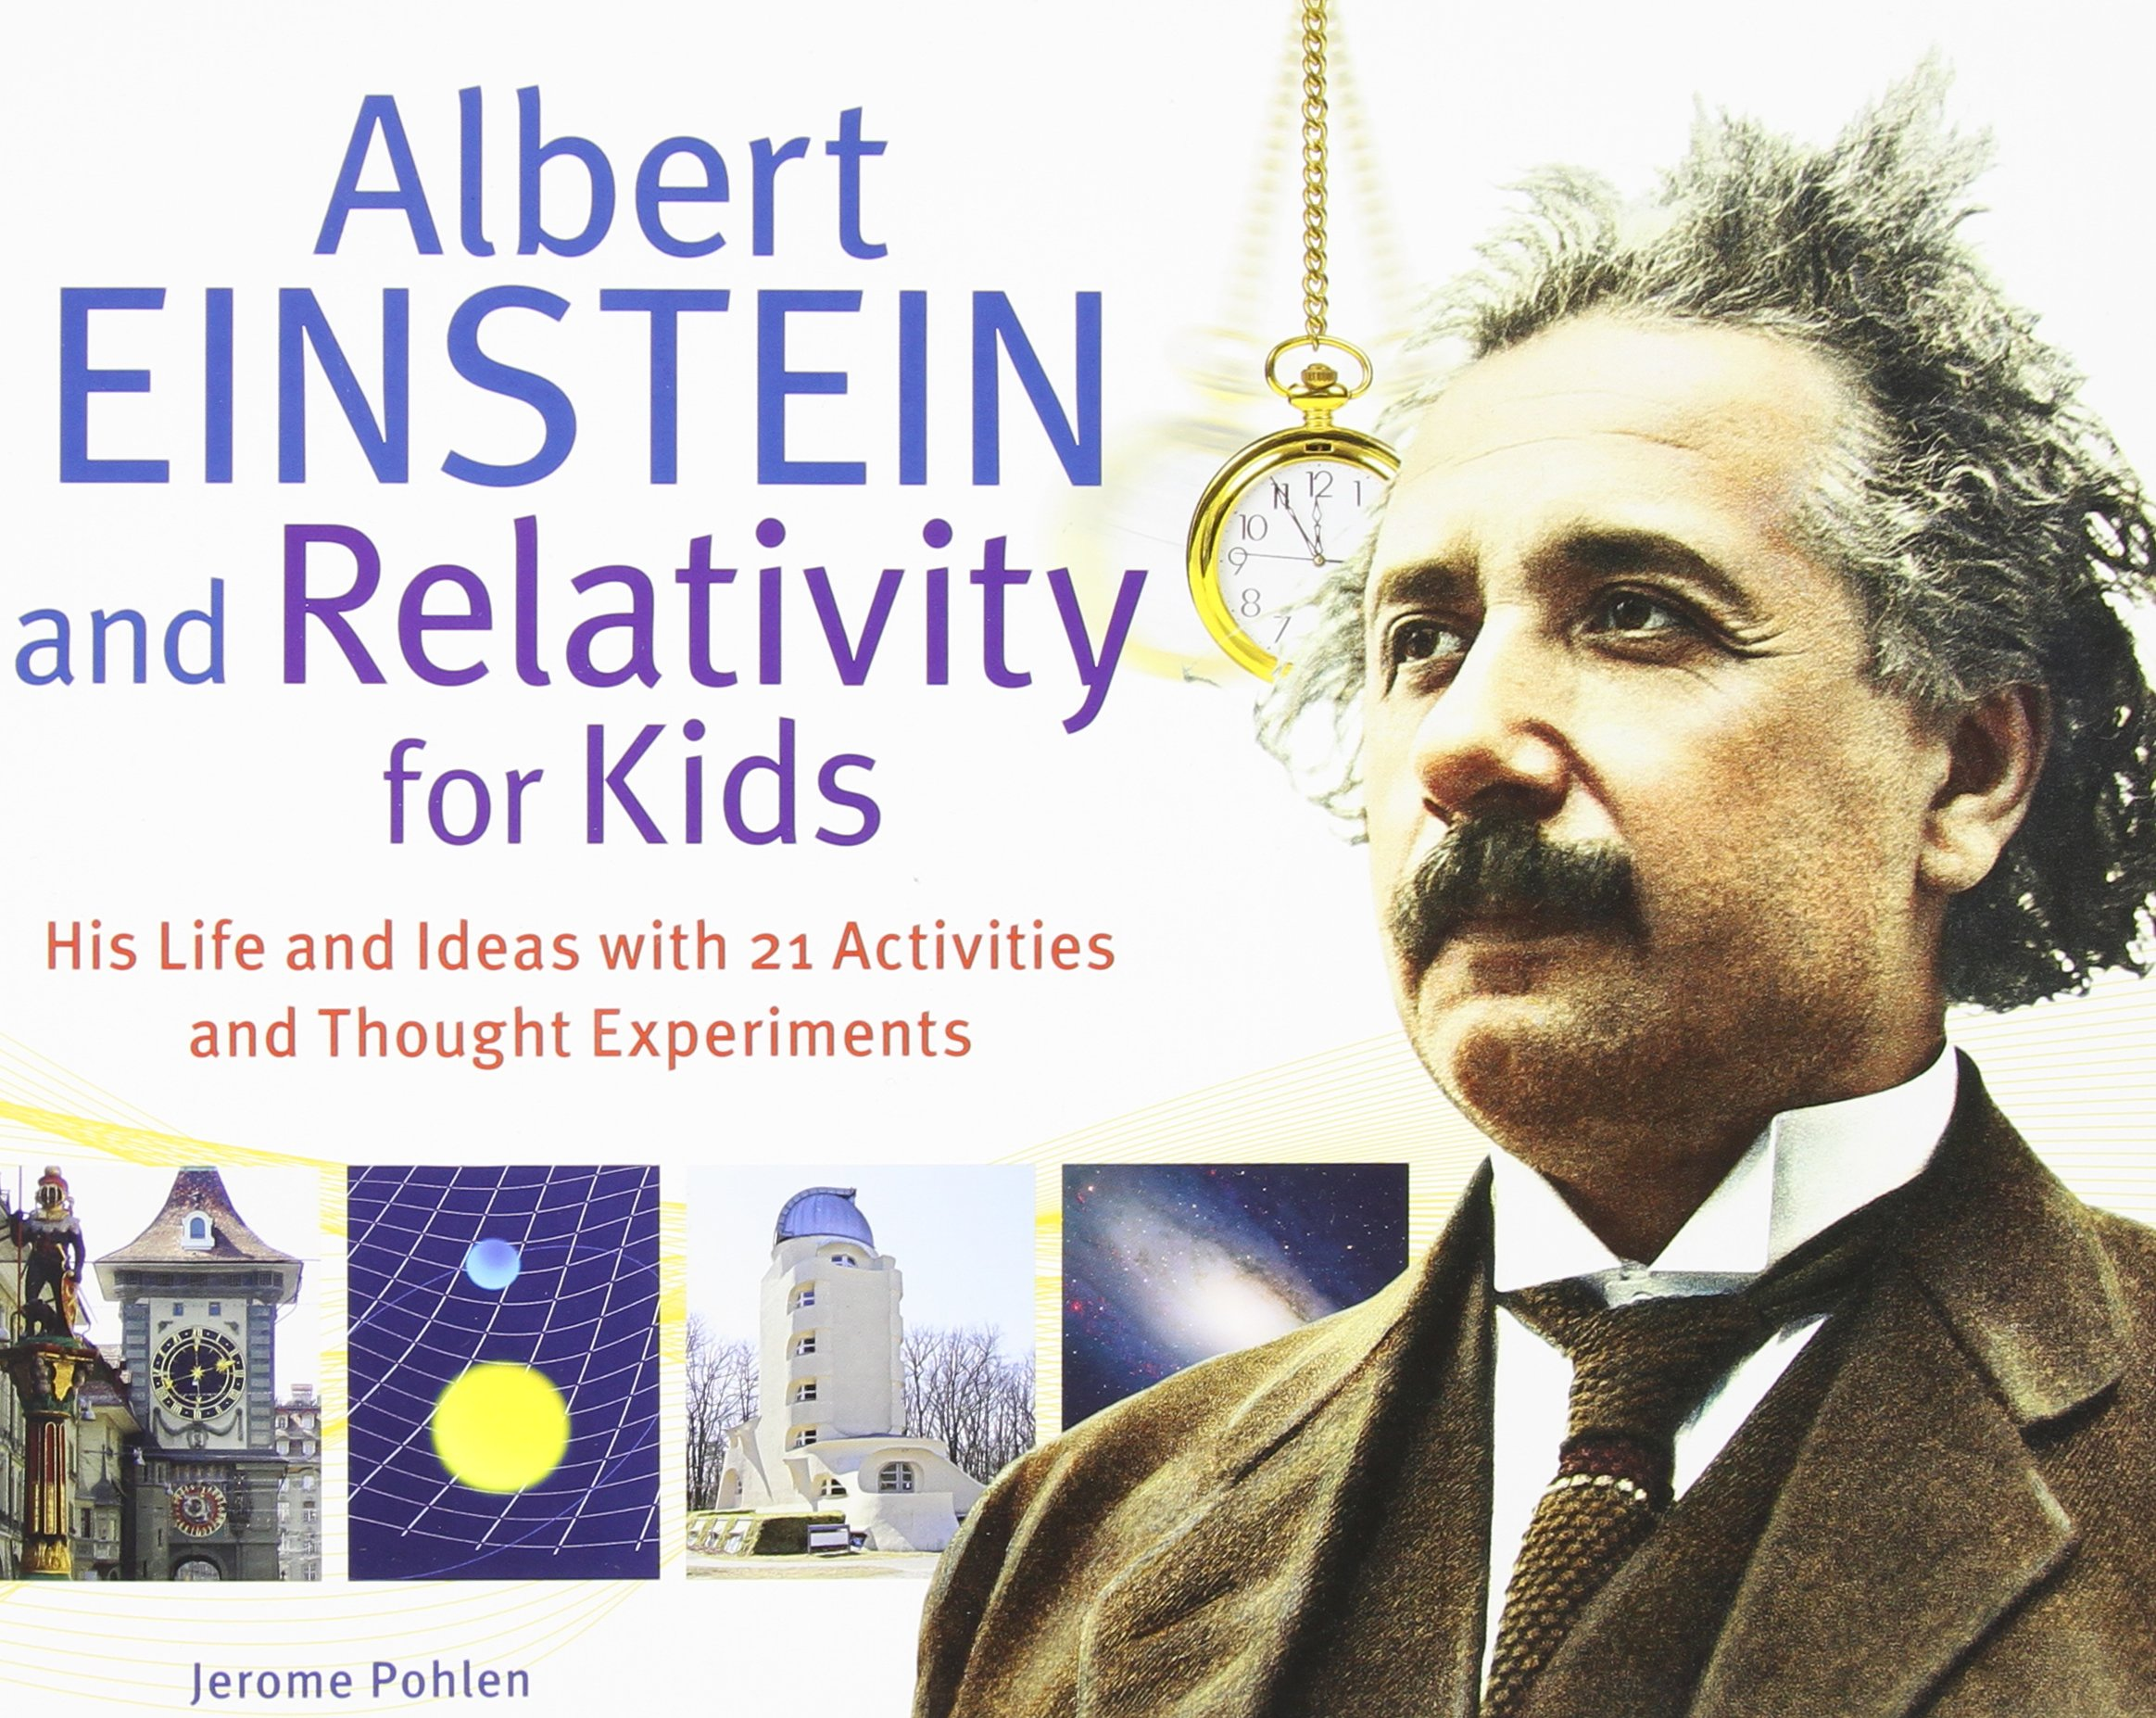 albert einstein and relativity for kids his life and ideas albert einstein and relativity for kids his life and ideas 21 activities and thought experiments for kids series jerome pohlen 9781613740286